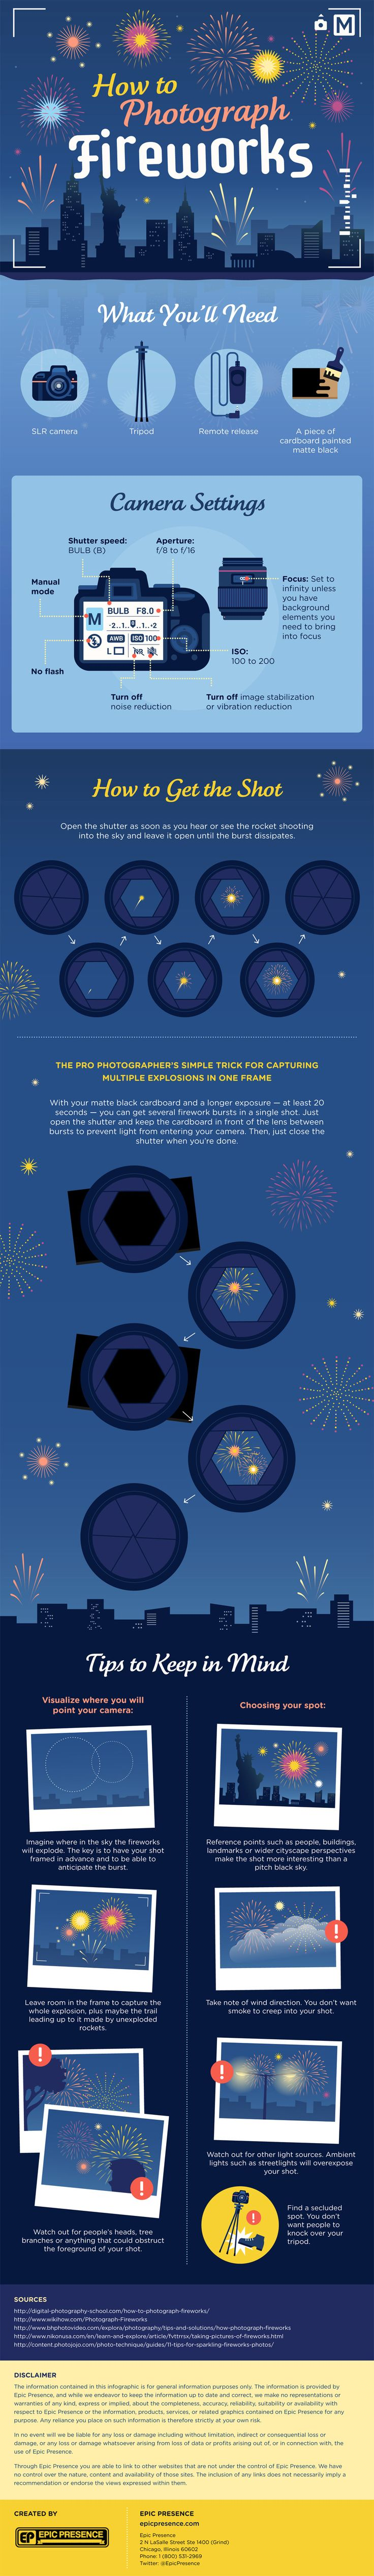 how to take pictures of fireworks